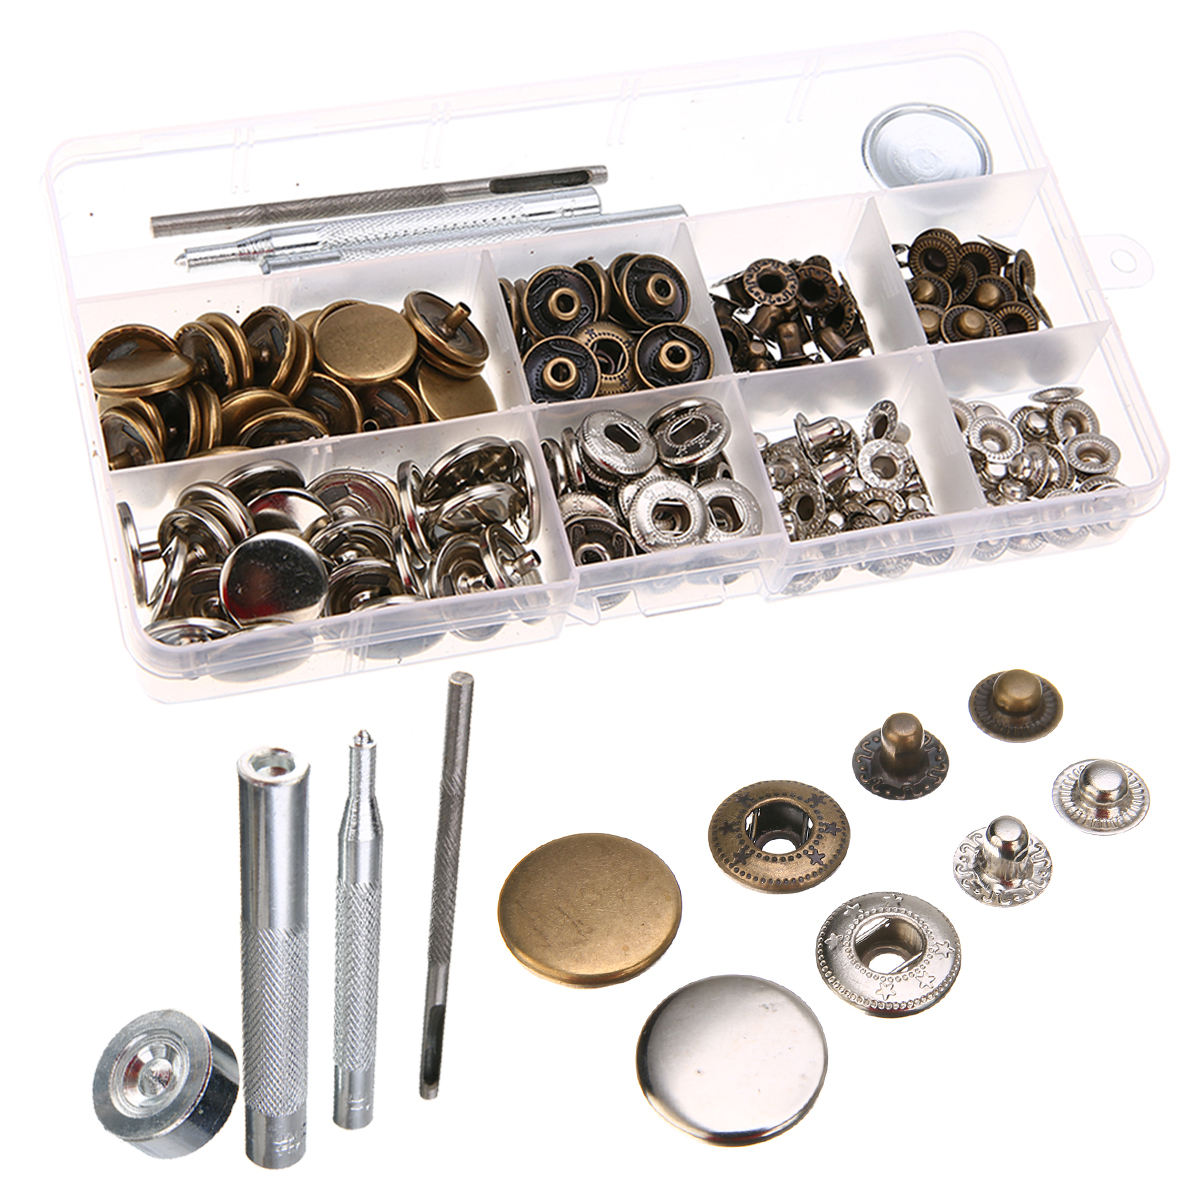 17mm Heavy Duty Snap Fasteners Press Stud Sewing Metal Snap Buttons Press Studs with 4 Pieces Fixing Tools For Leather Craft